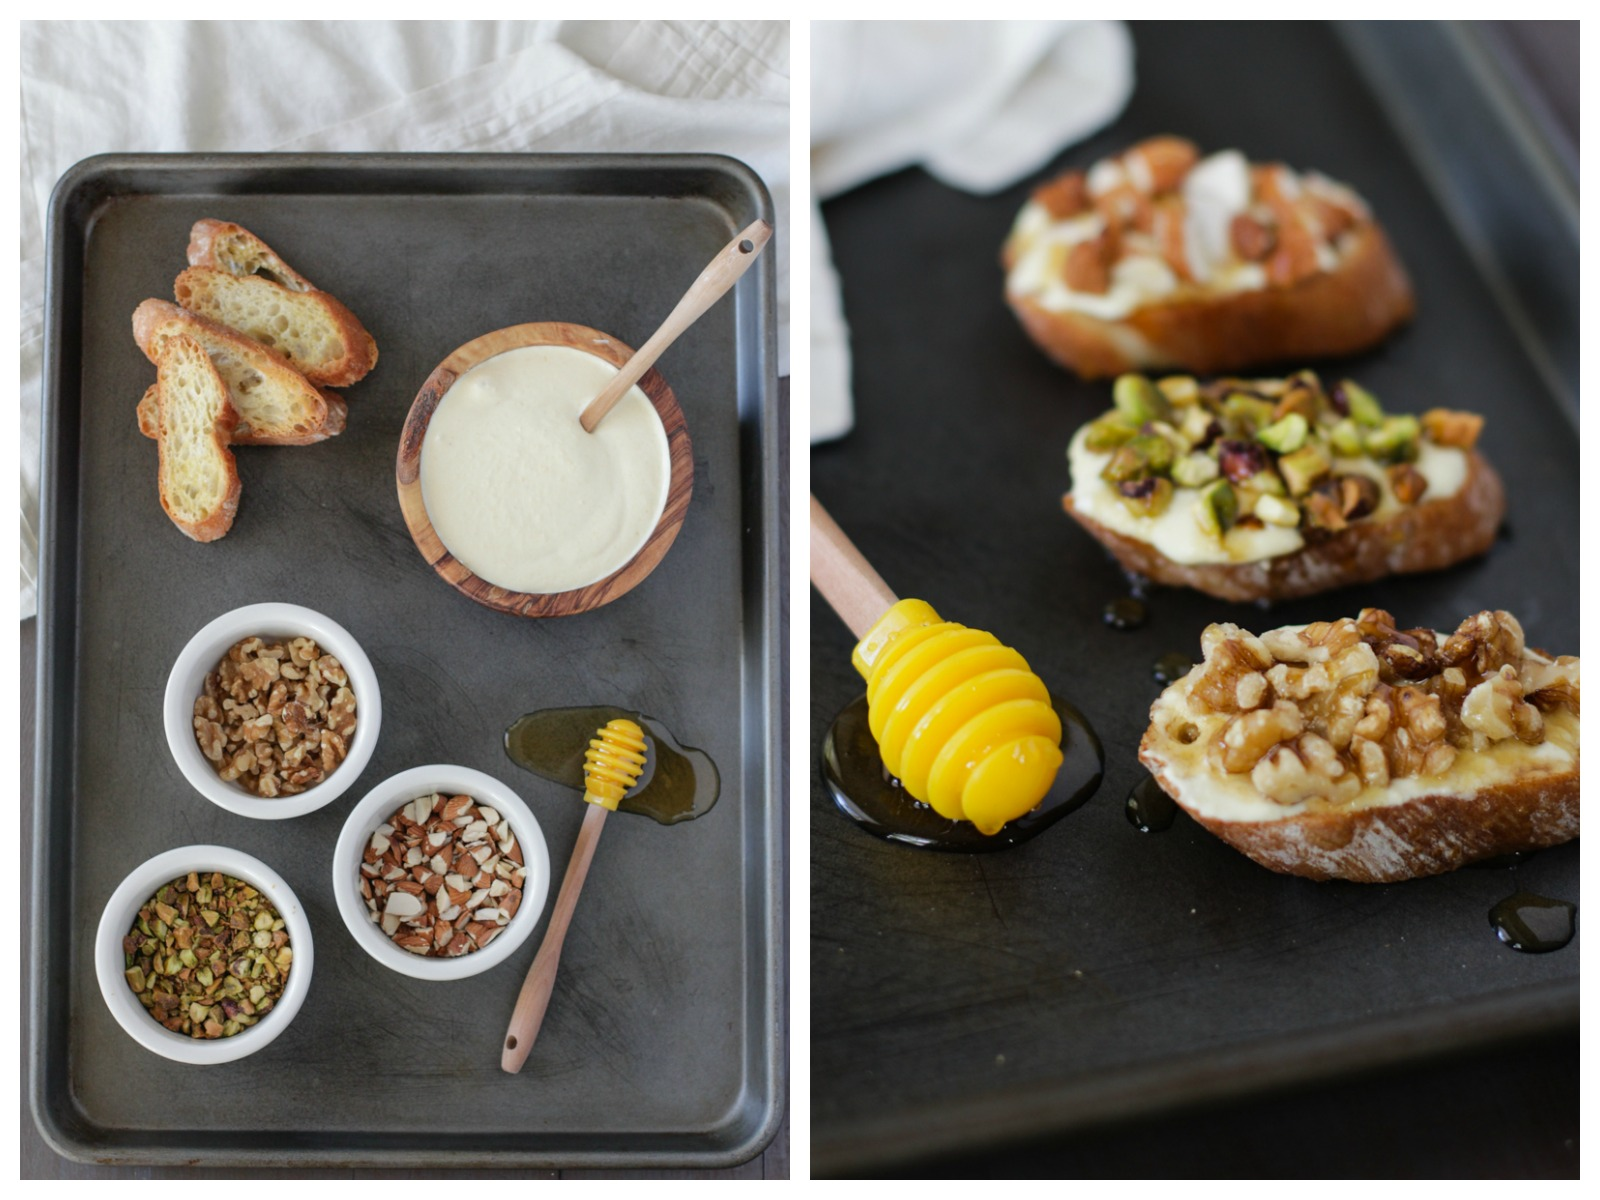 Cling Peach Goat Cheese Crostini with Nuts and Honey | Alyssa & Carla